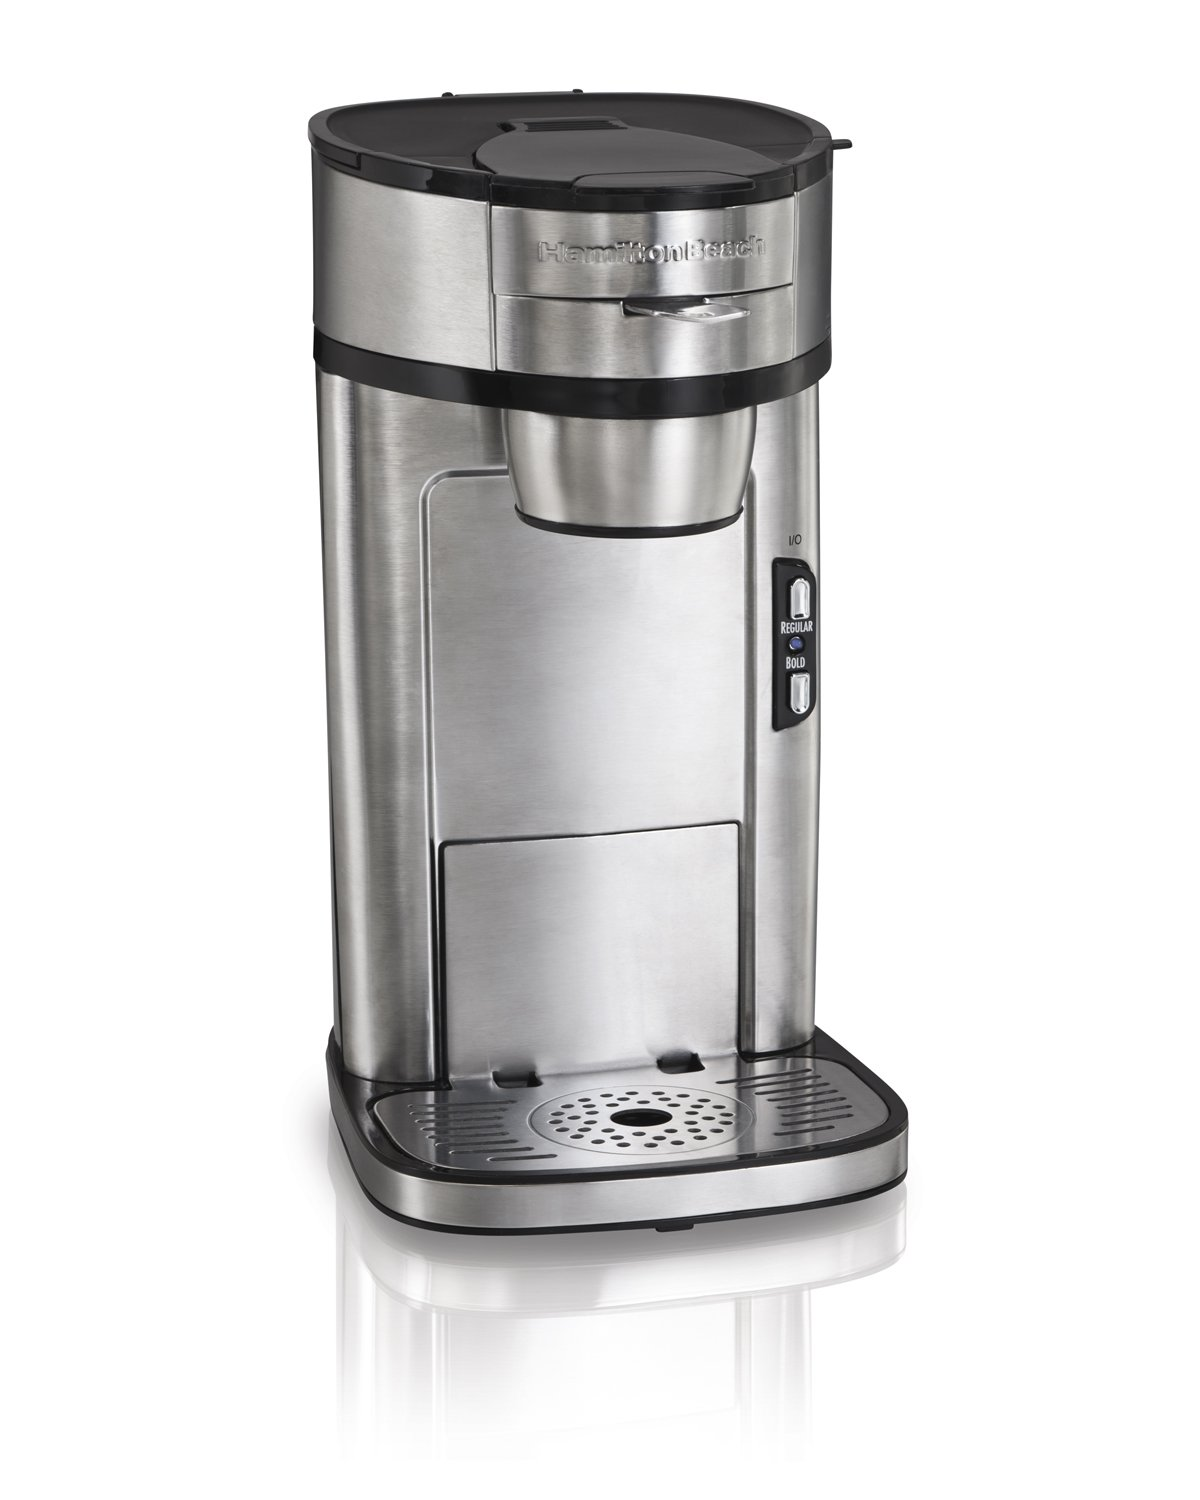 1. Hamilton Beach 49981A Coffee Maker